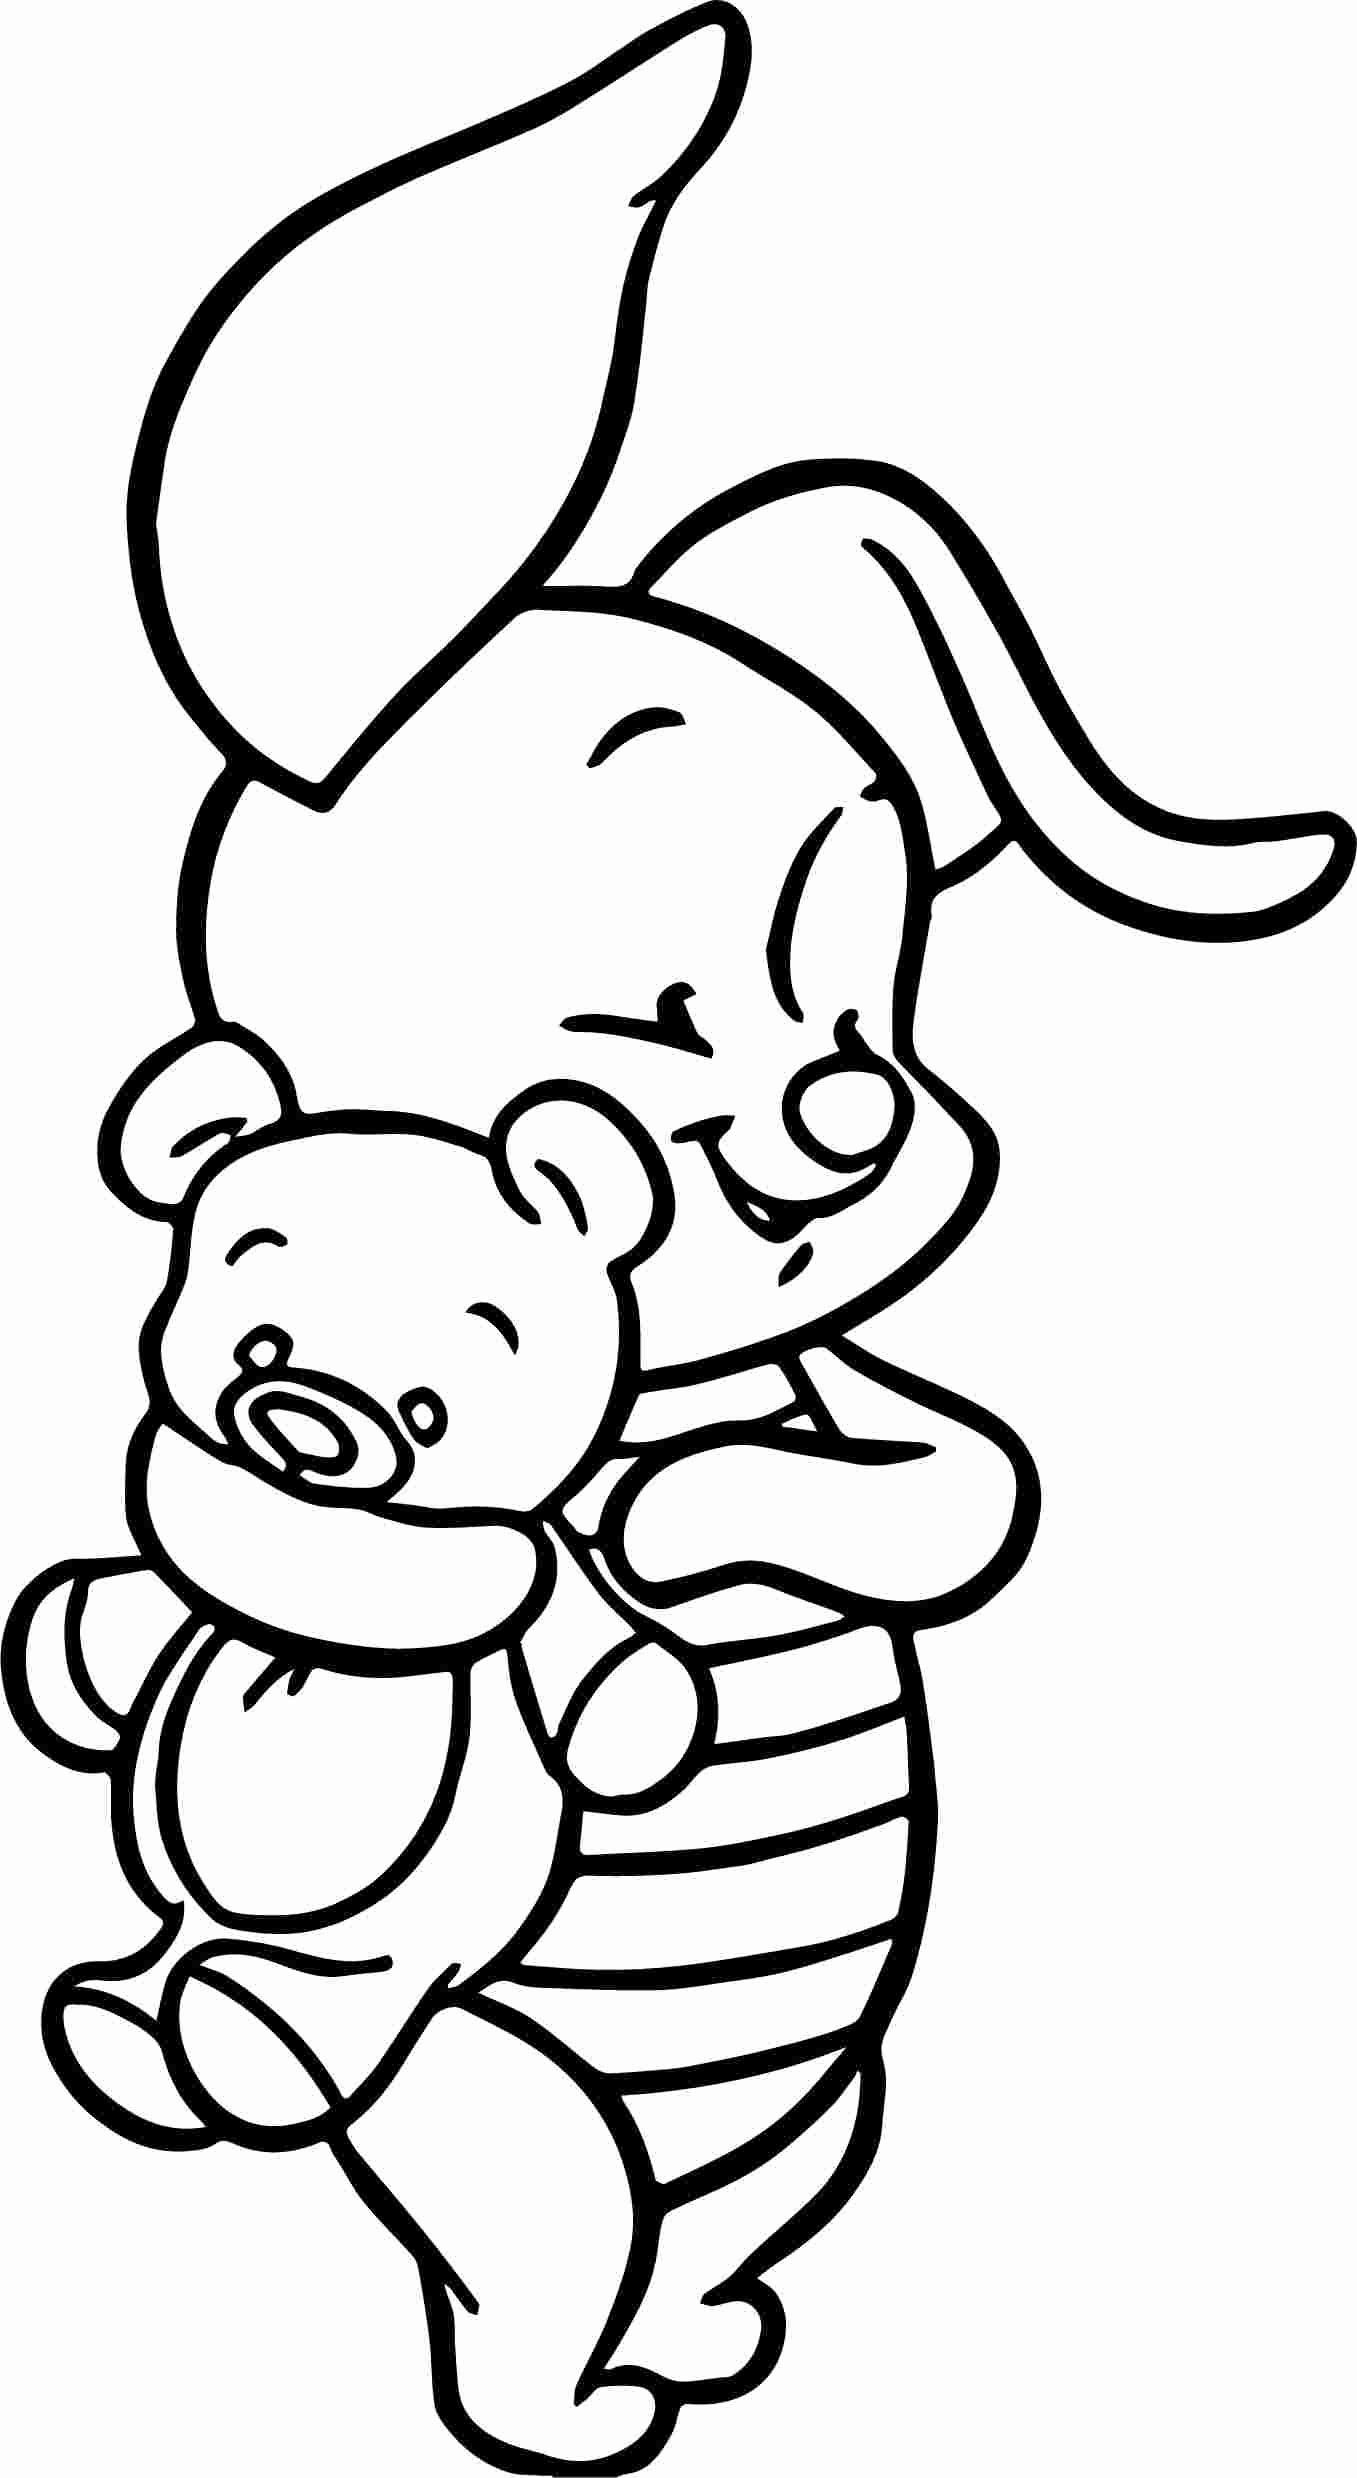 Disney Coloring Pages For Kids Baby Eeyore In 2020 Baby Coloring Pages Cartoon Coloring Pages Disney Coloring Pages